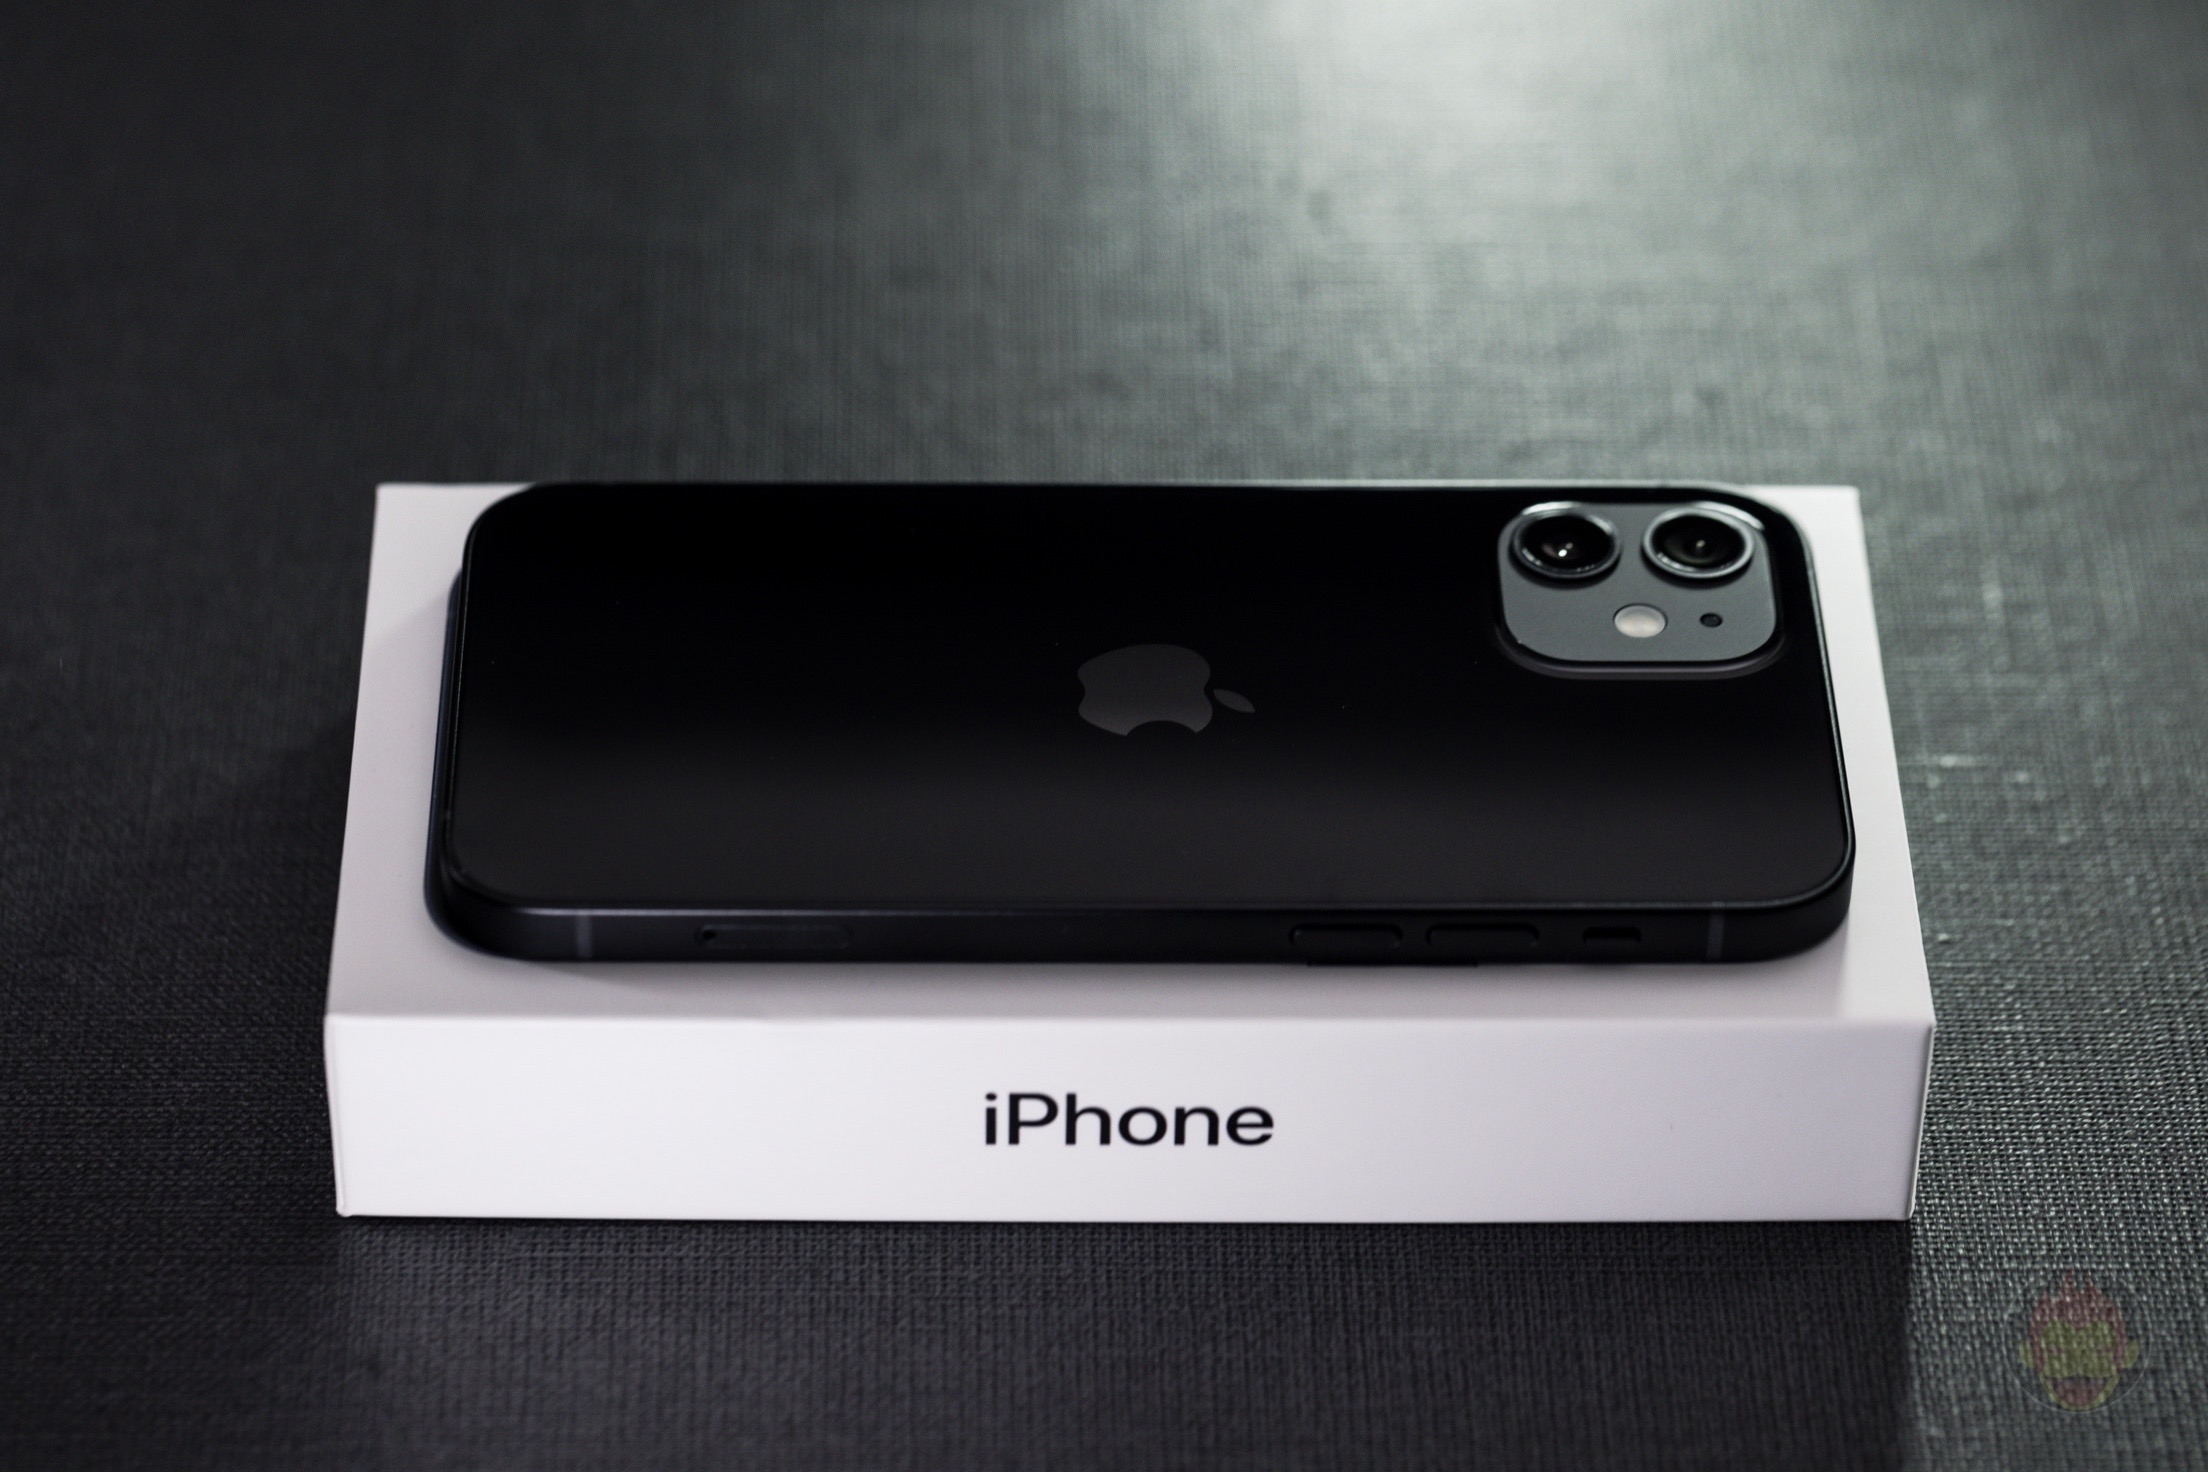 iPhone-12-review-boxes-04.jpg